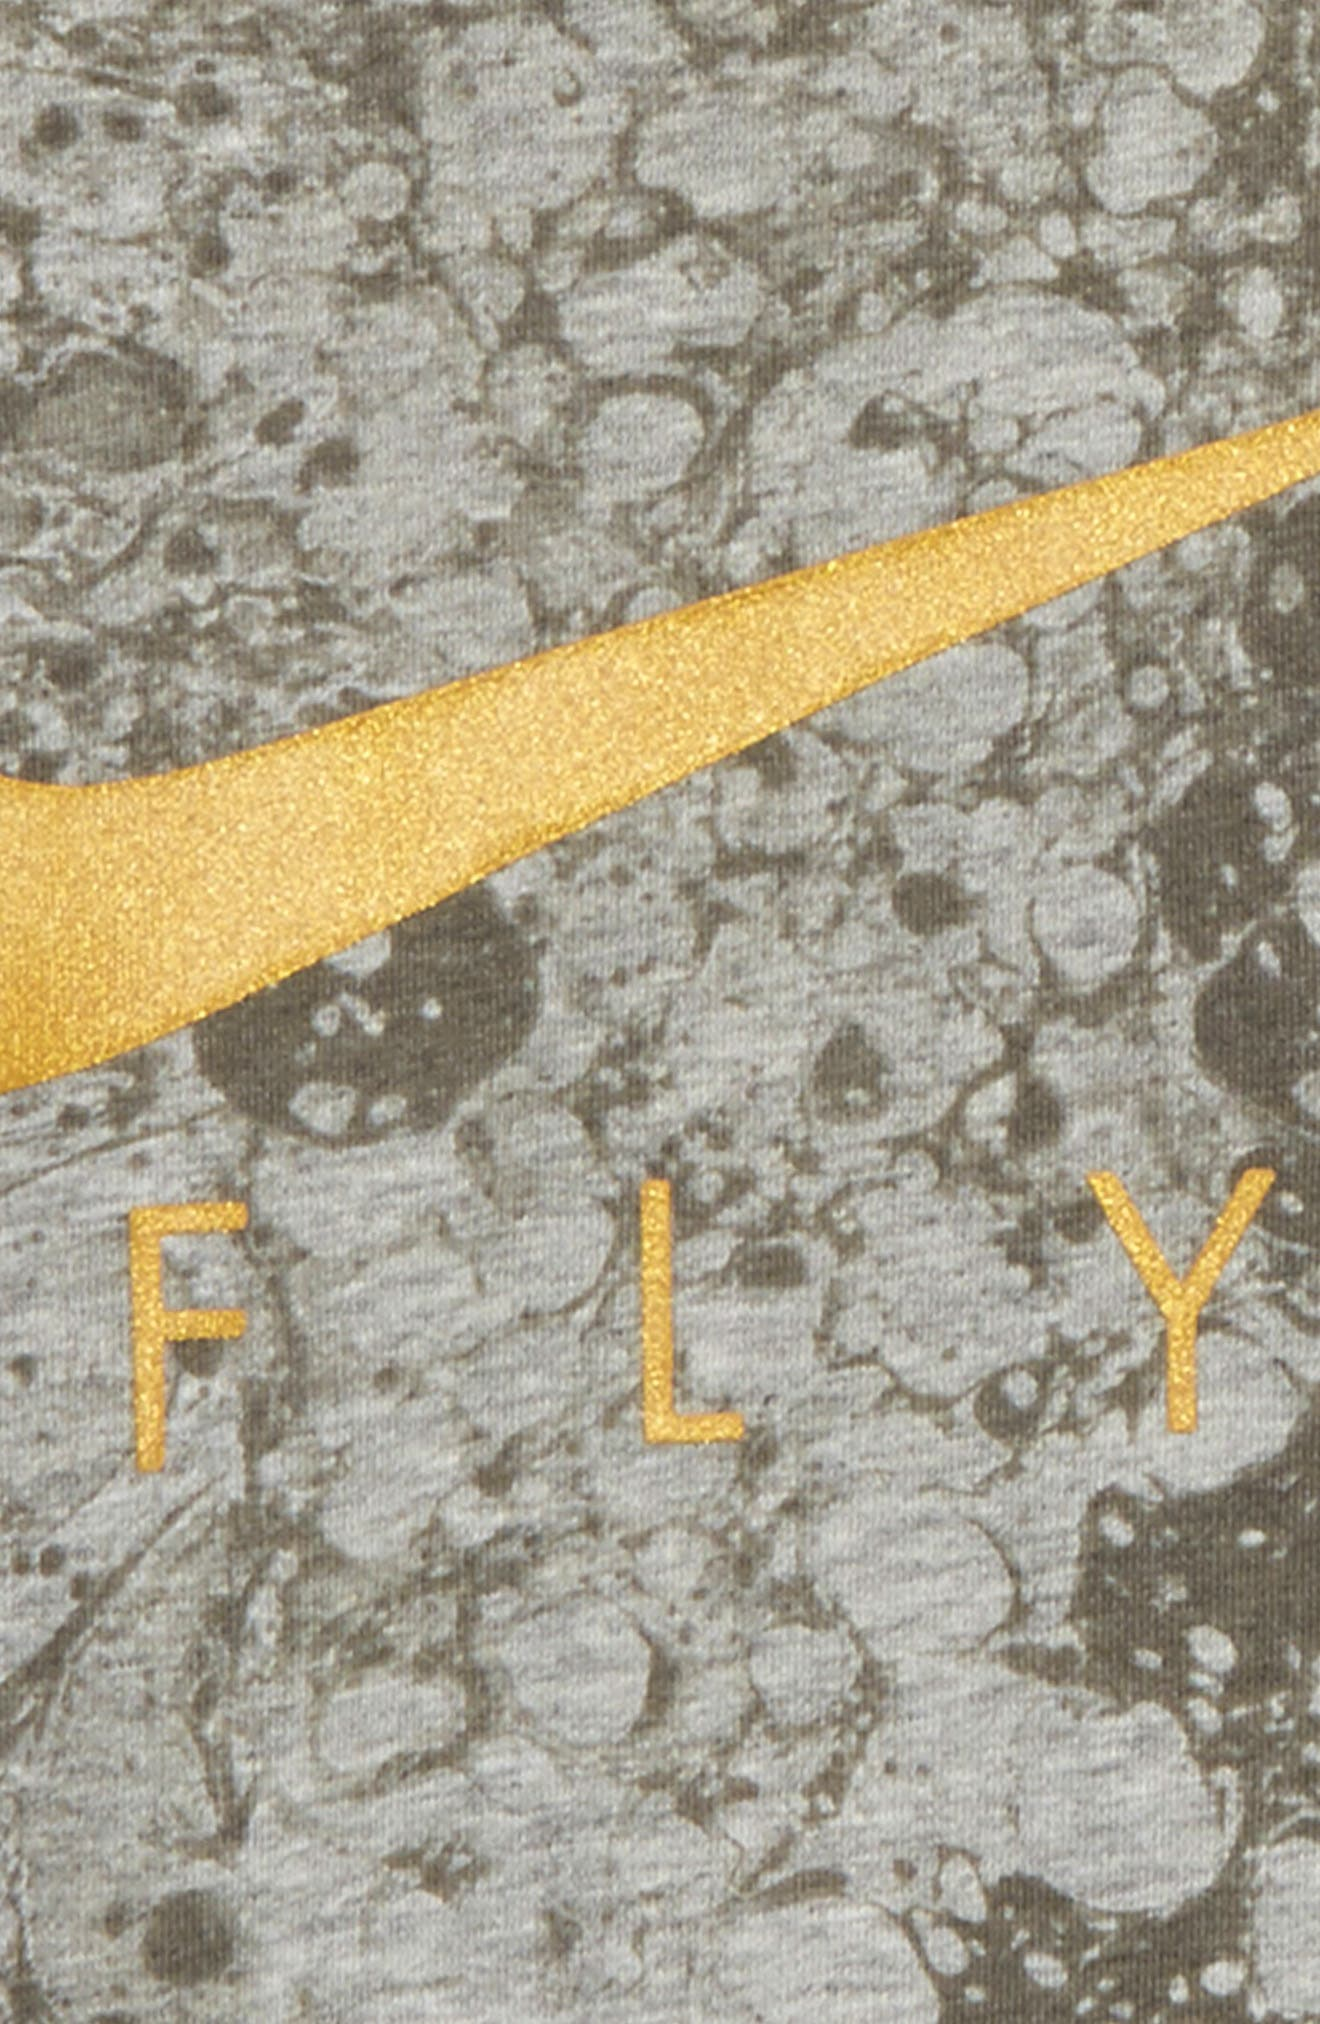 Dry LunarFly Droptail T-Shirt,                             Alternate thumbnail 2, color,                             D Gr H/ M Gold